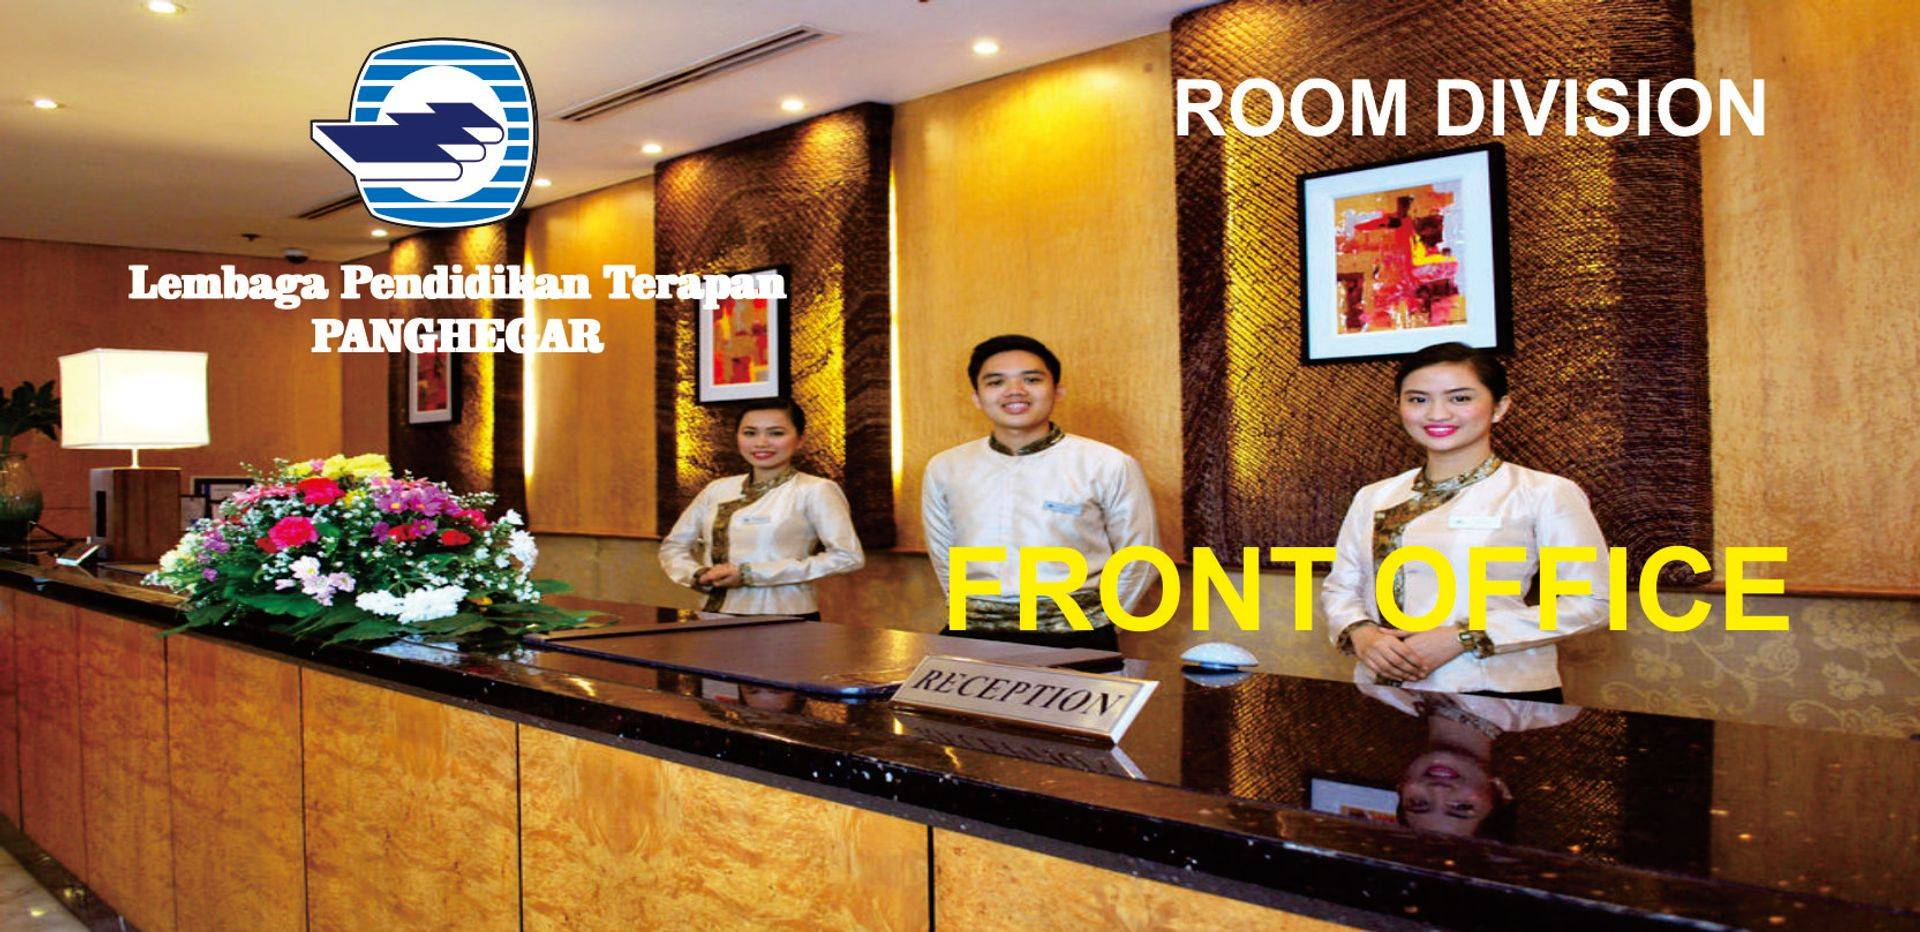 Room Division - Front Office